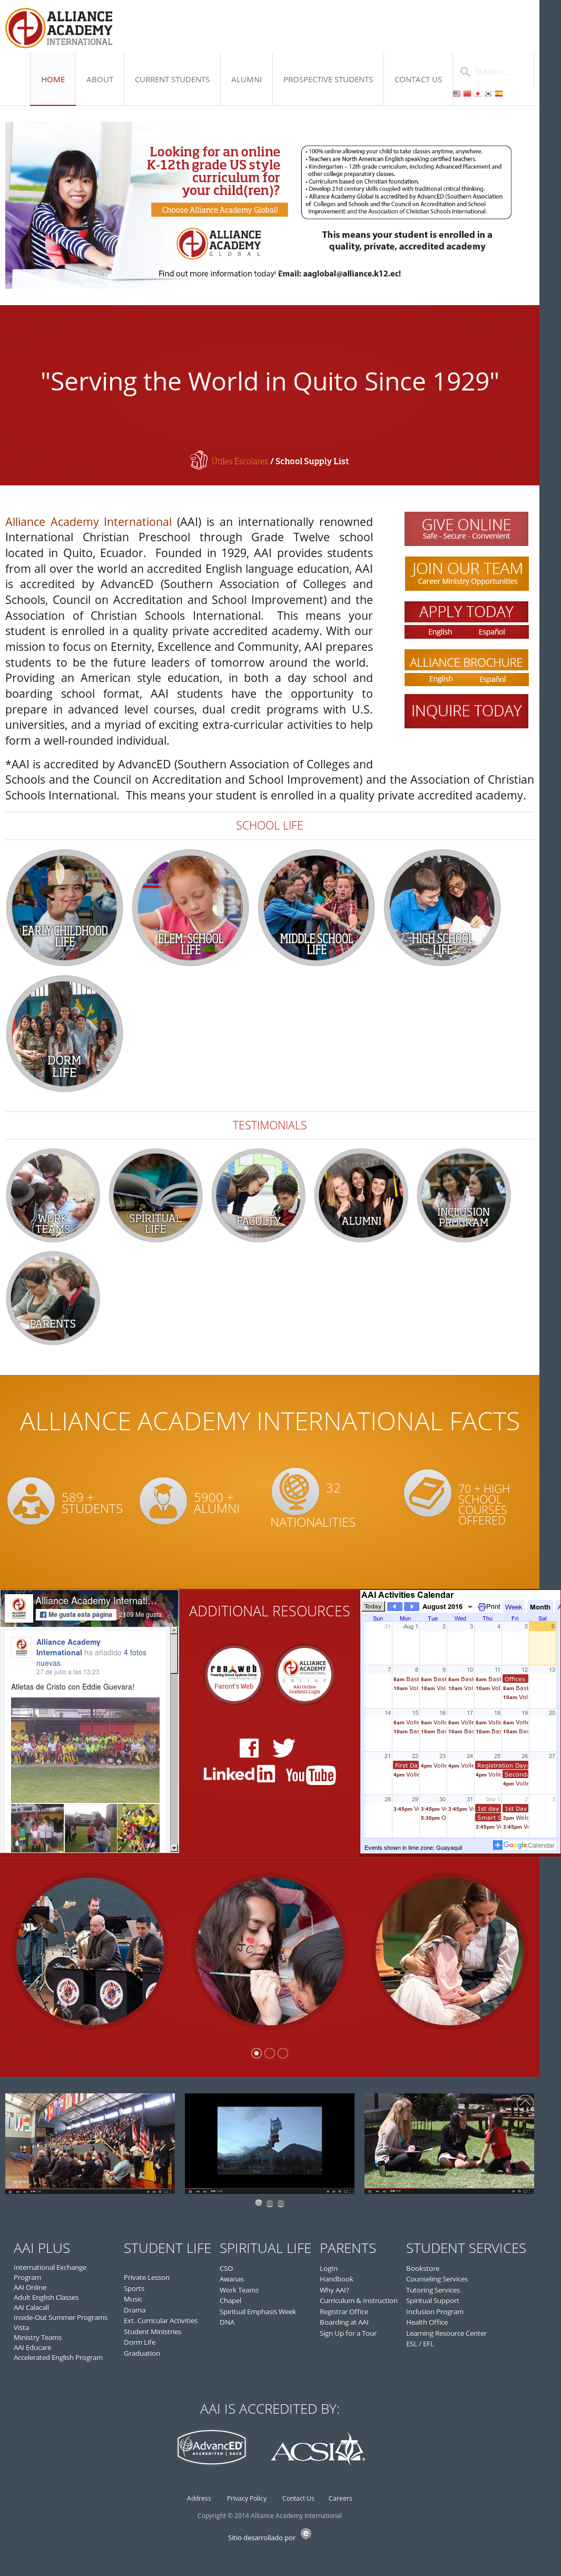 Alliance Academy International Competitors, Revenue and